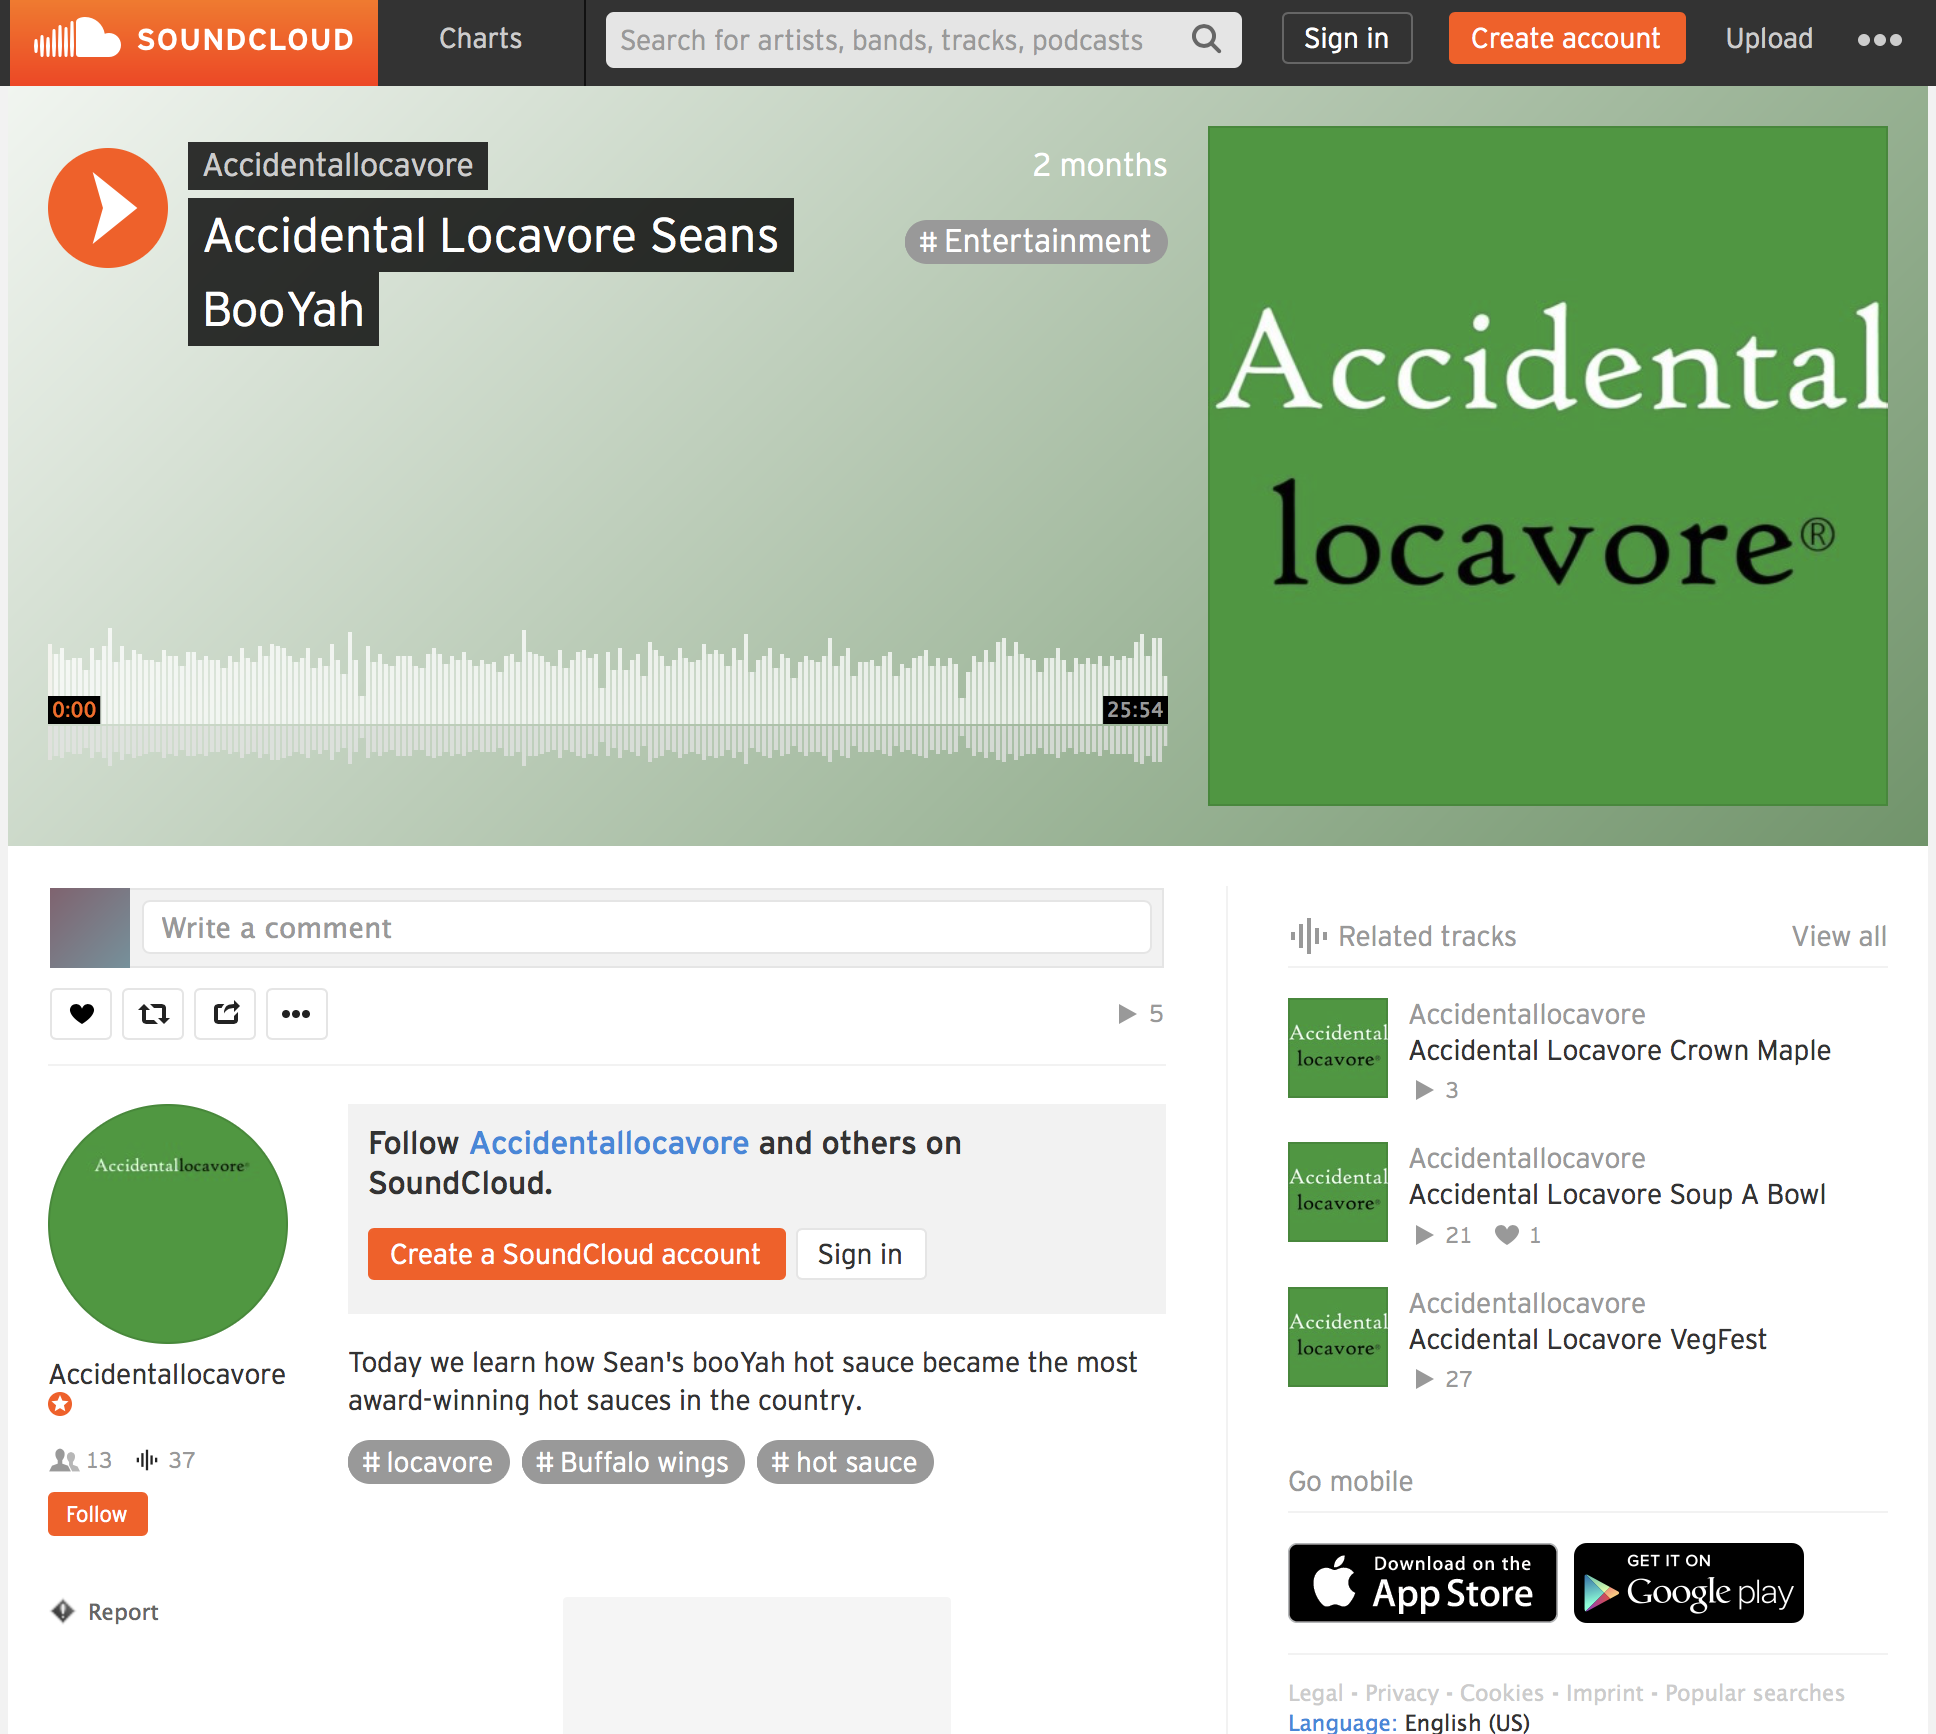 RADIO INTERVIEW ON ACCIDENTAL LOCAVORE